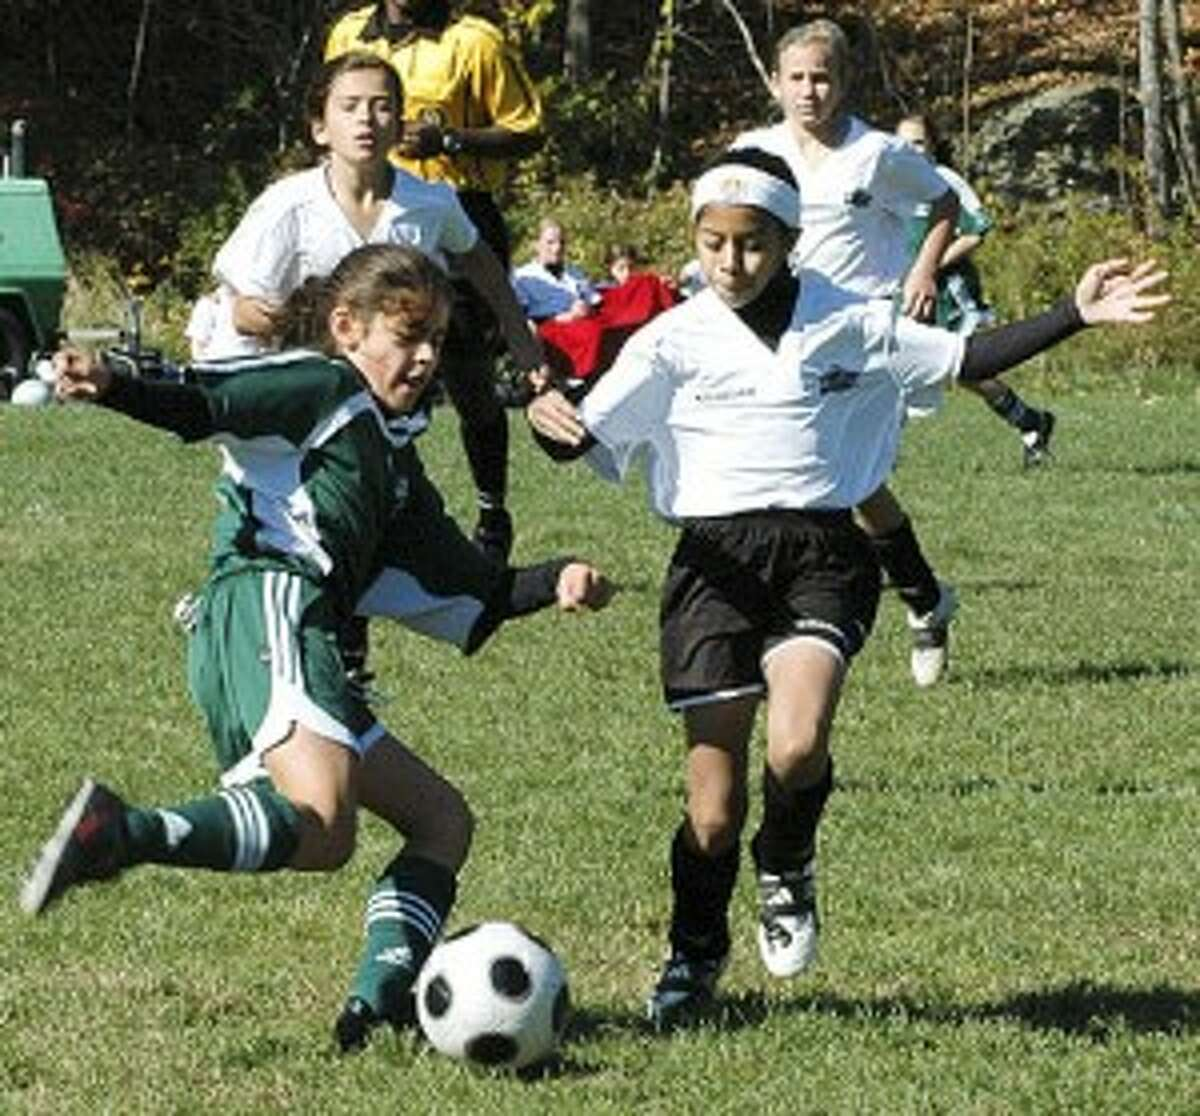 Connecticut Cup Soccer: And then there were four